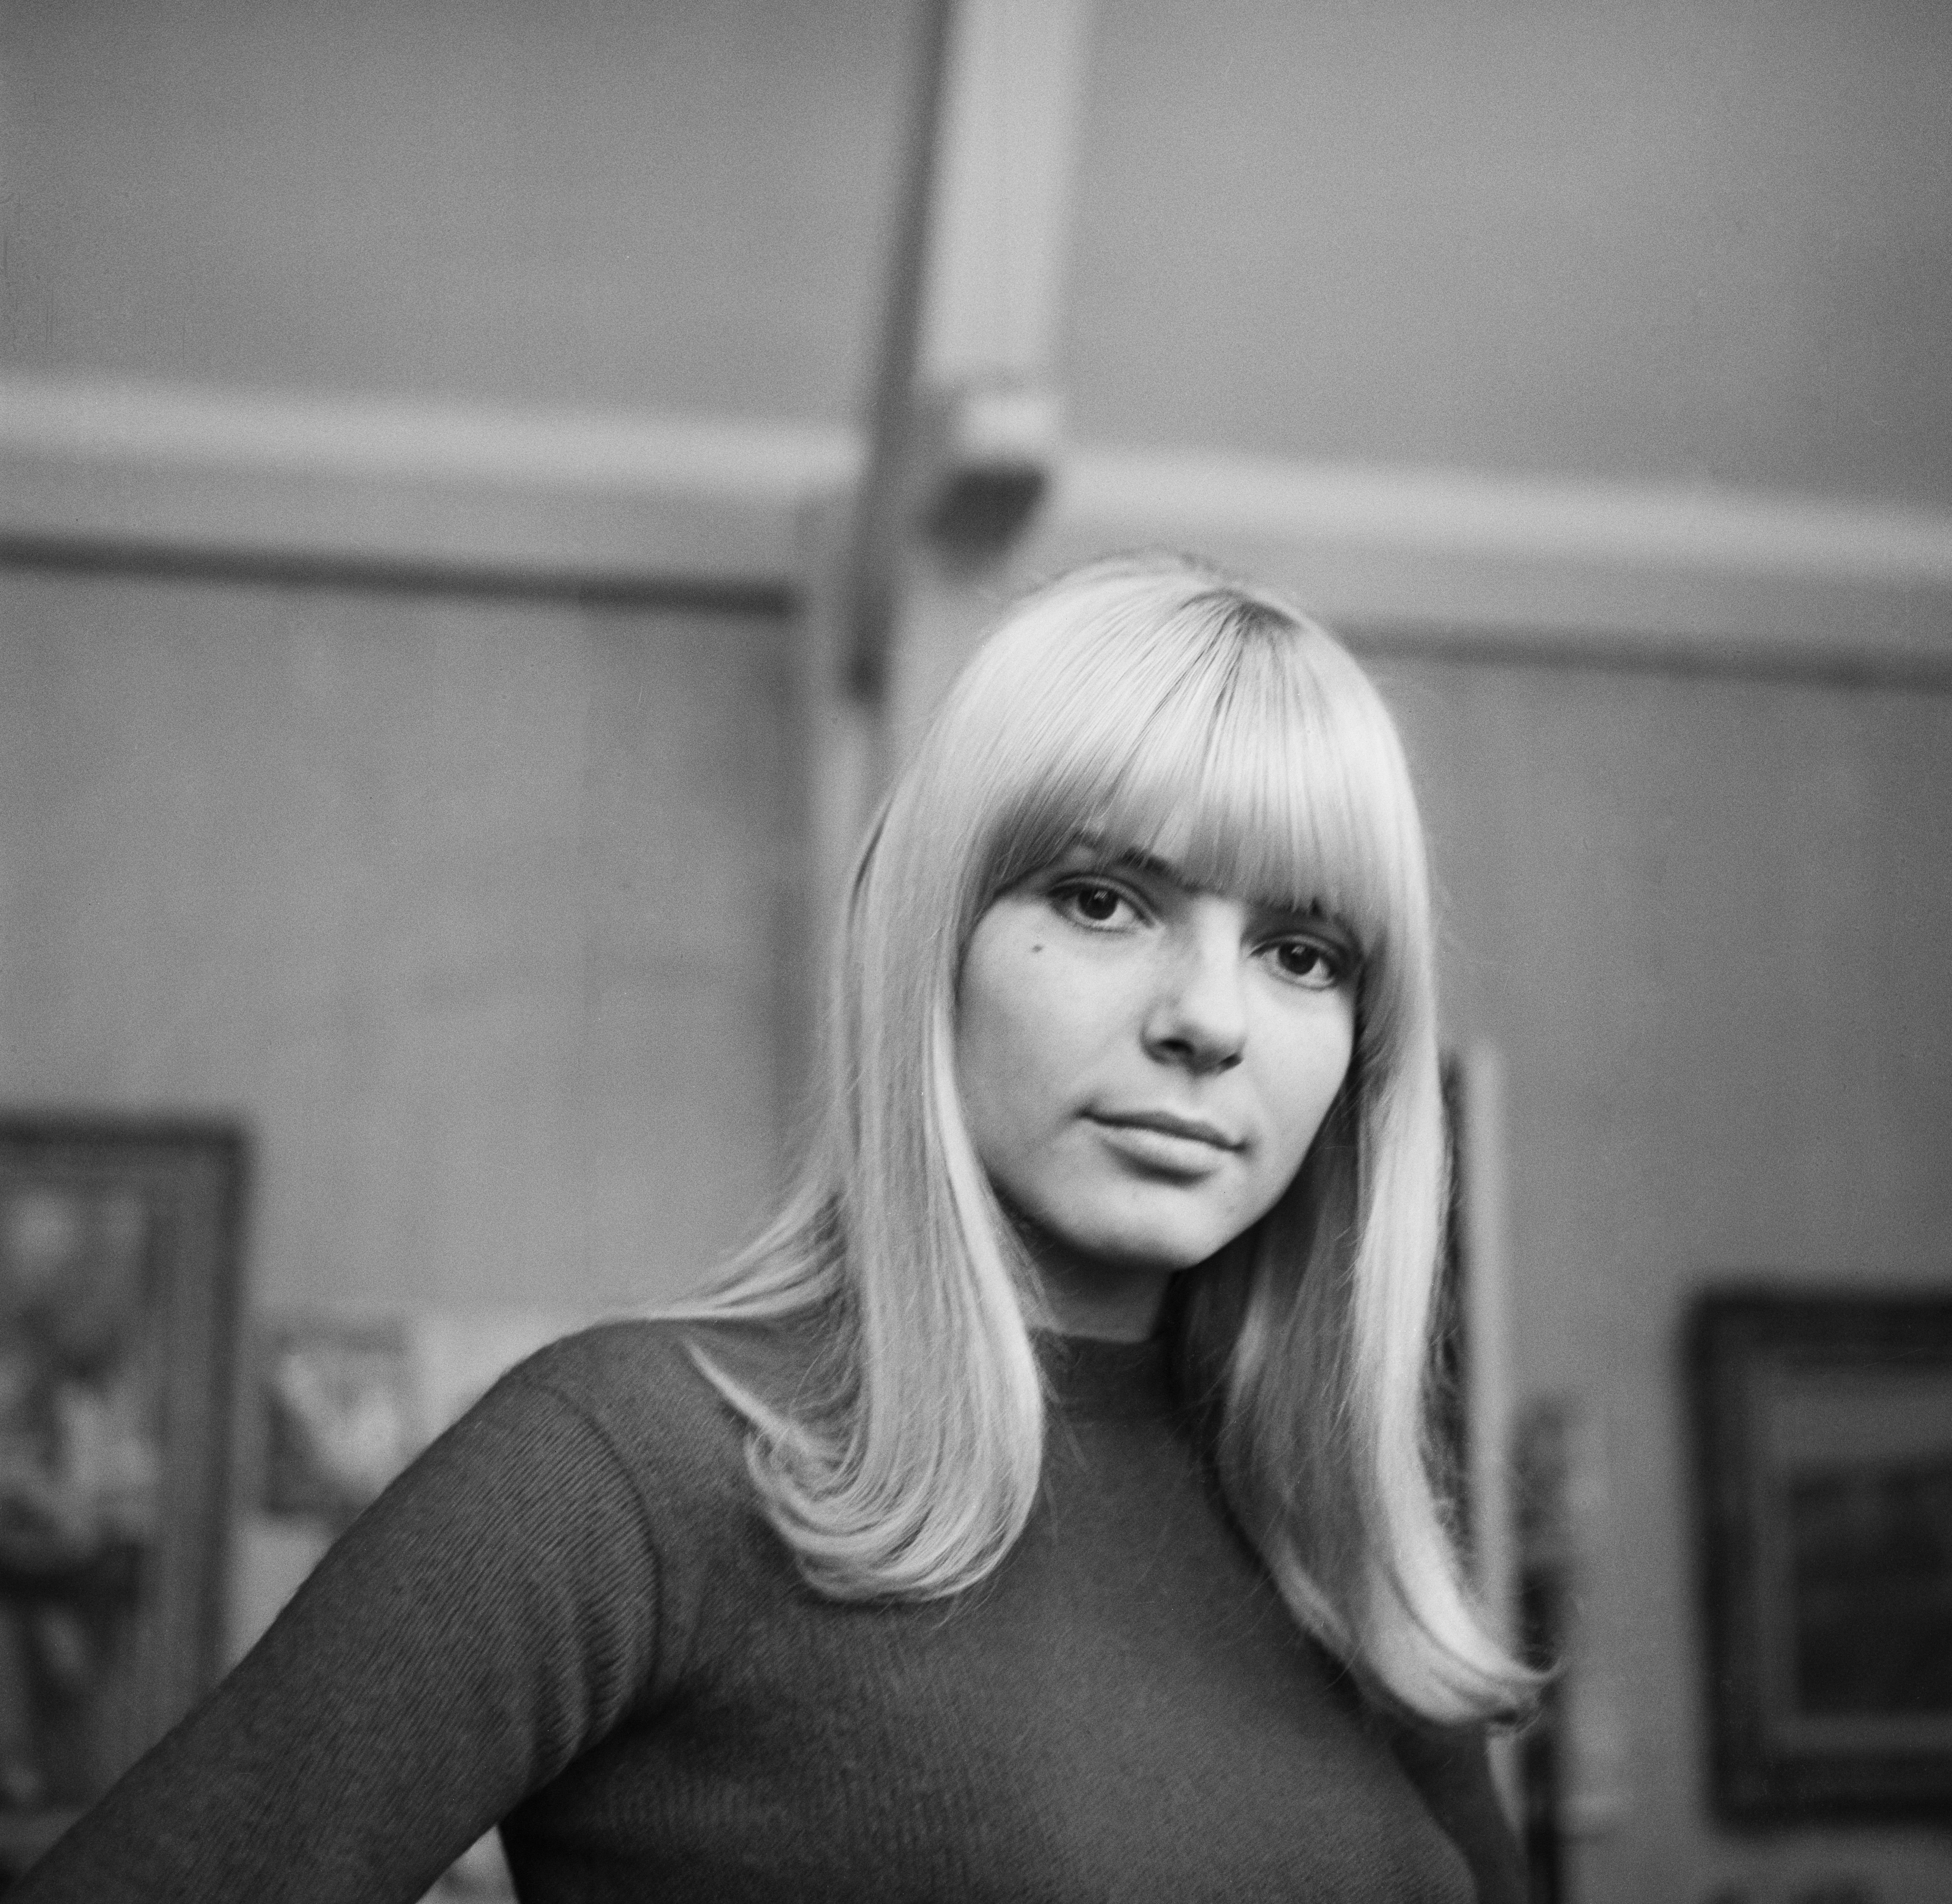 La légendaire France Gall dans sa jeunesse. l Source : Getty Images